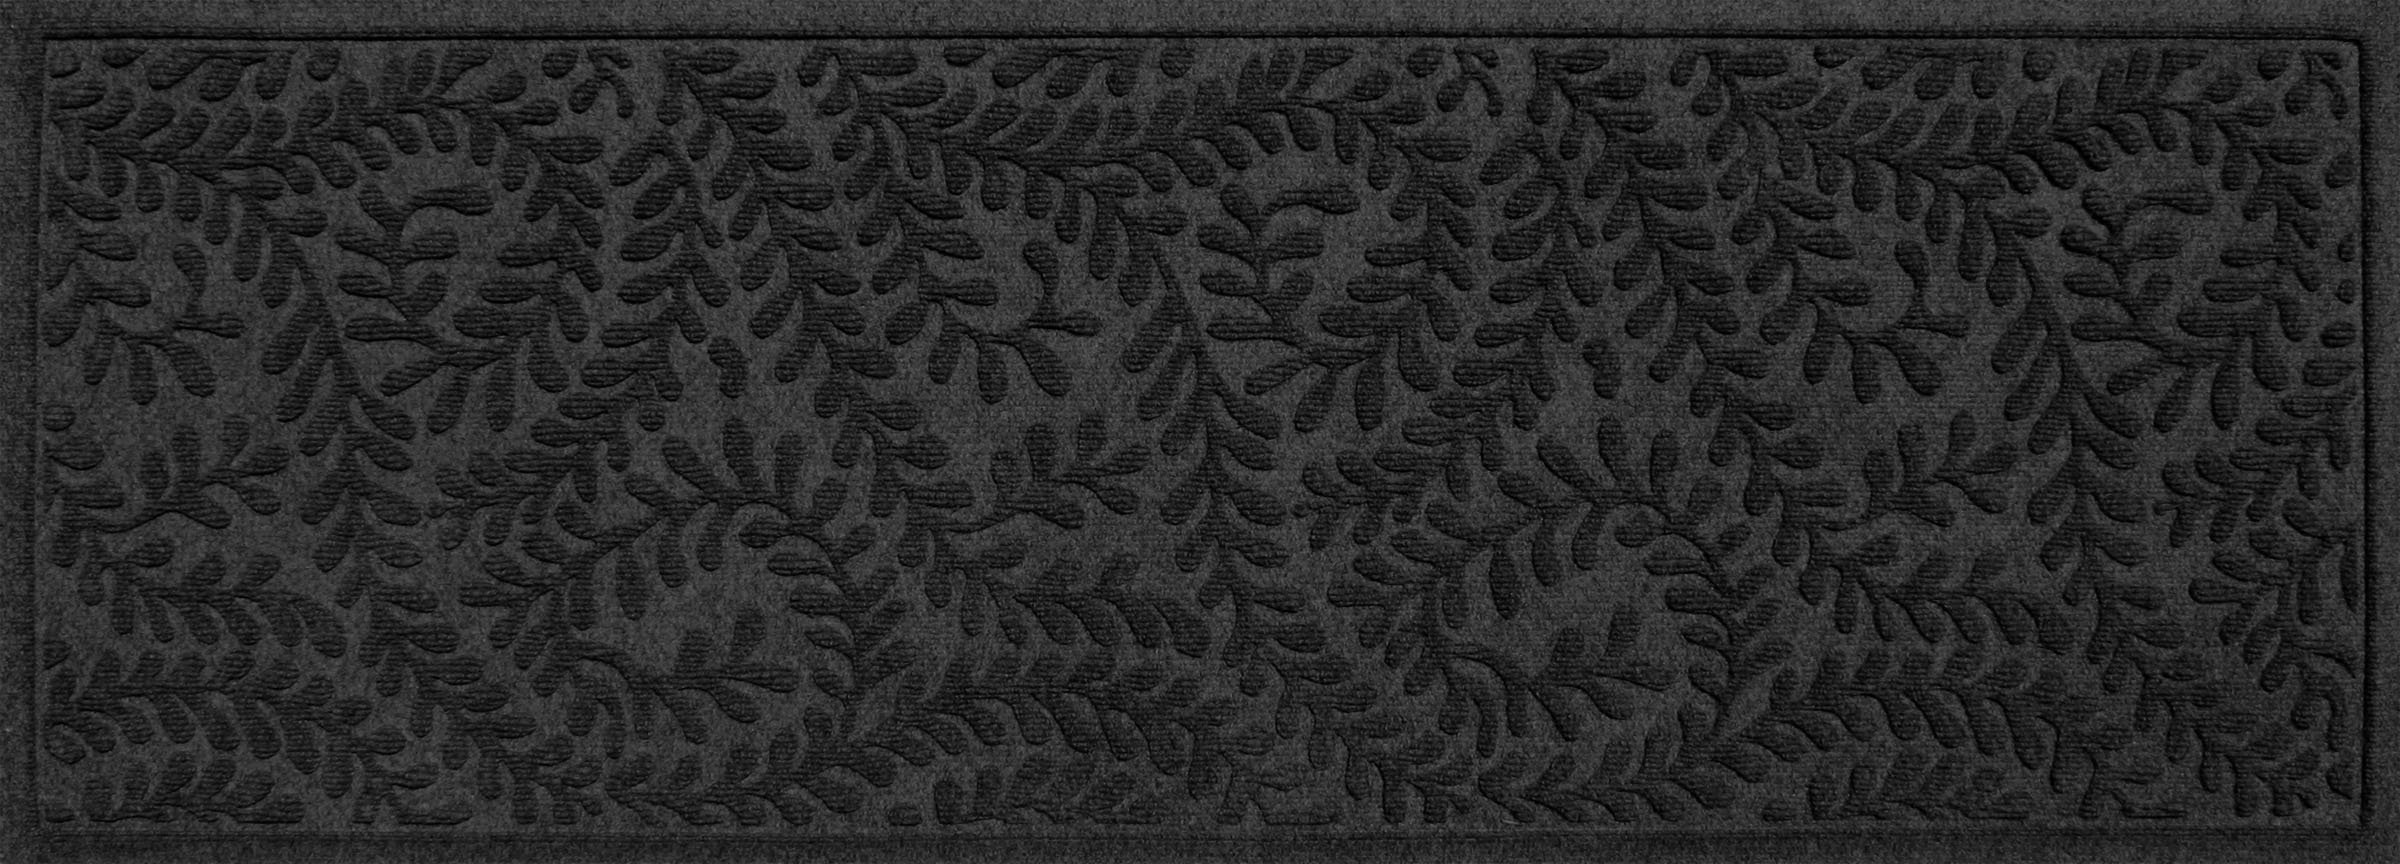 Bungalow Flooring Waterhog Indoor/Outdoor Runner Rug, 22'' x 60'', Skid Resistant, Easy to Clean, Catches Water and Debris, Boxwood Collection, Charcoal